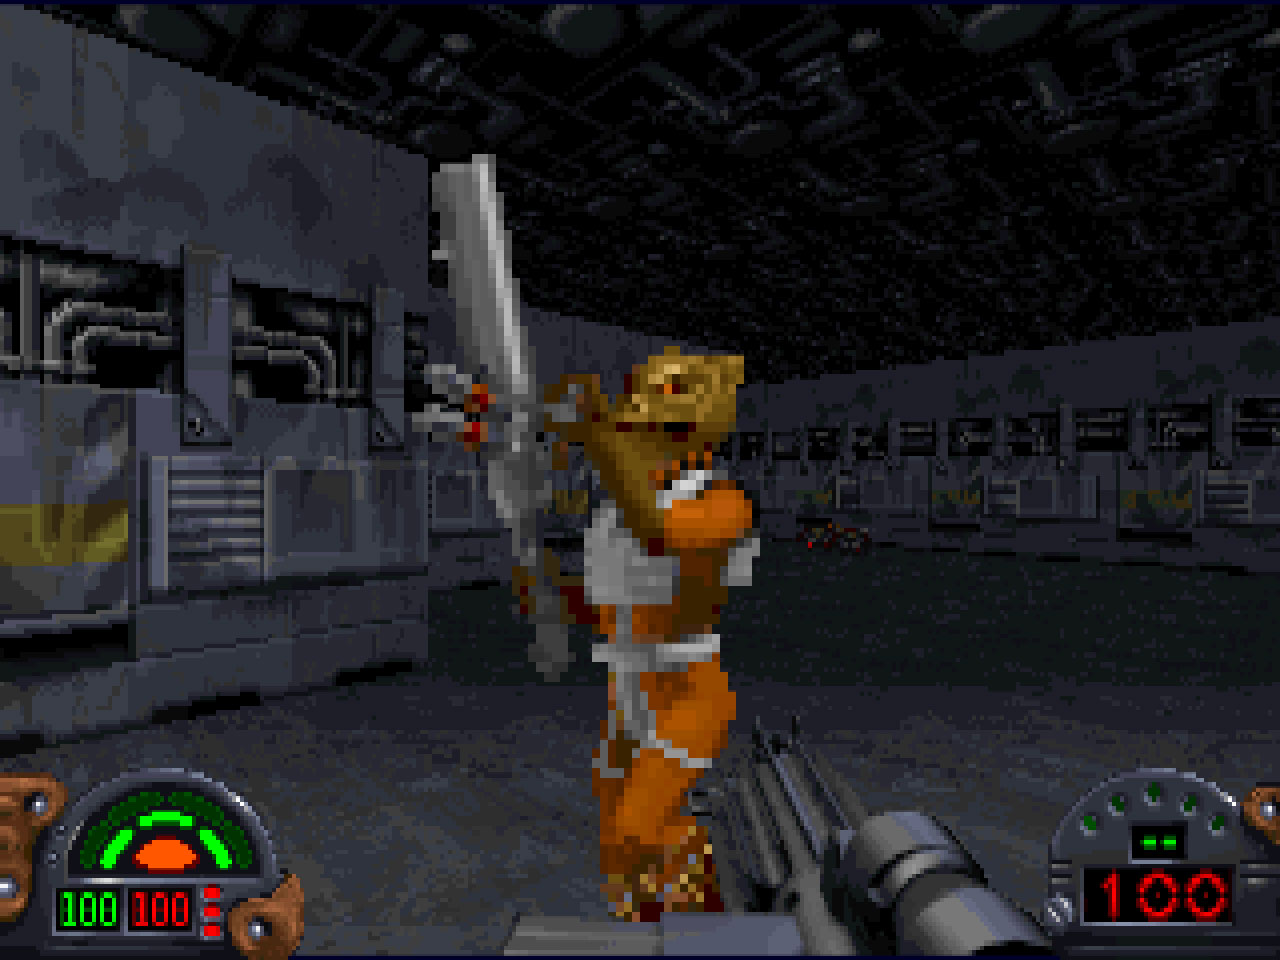 star wars dark forces retro dos review